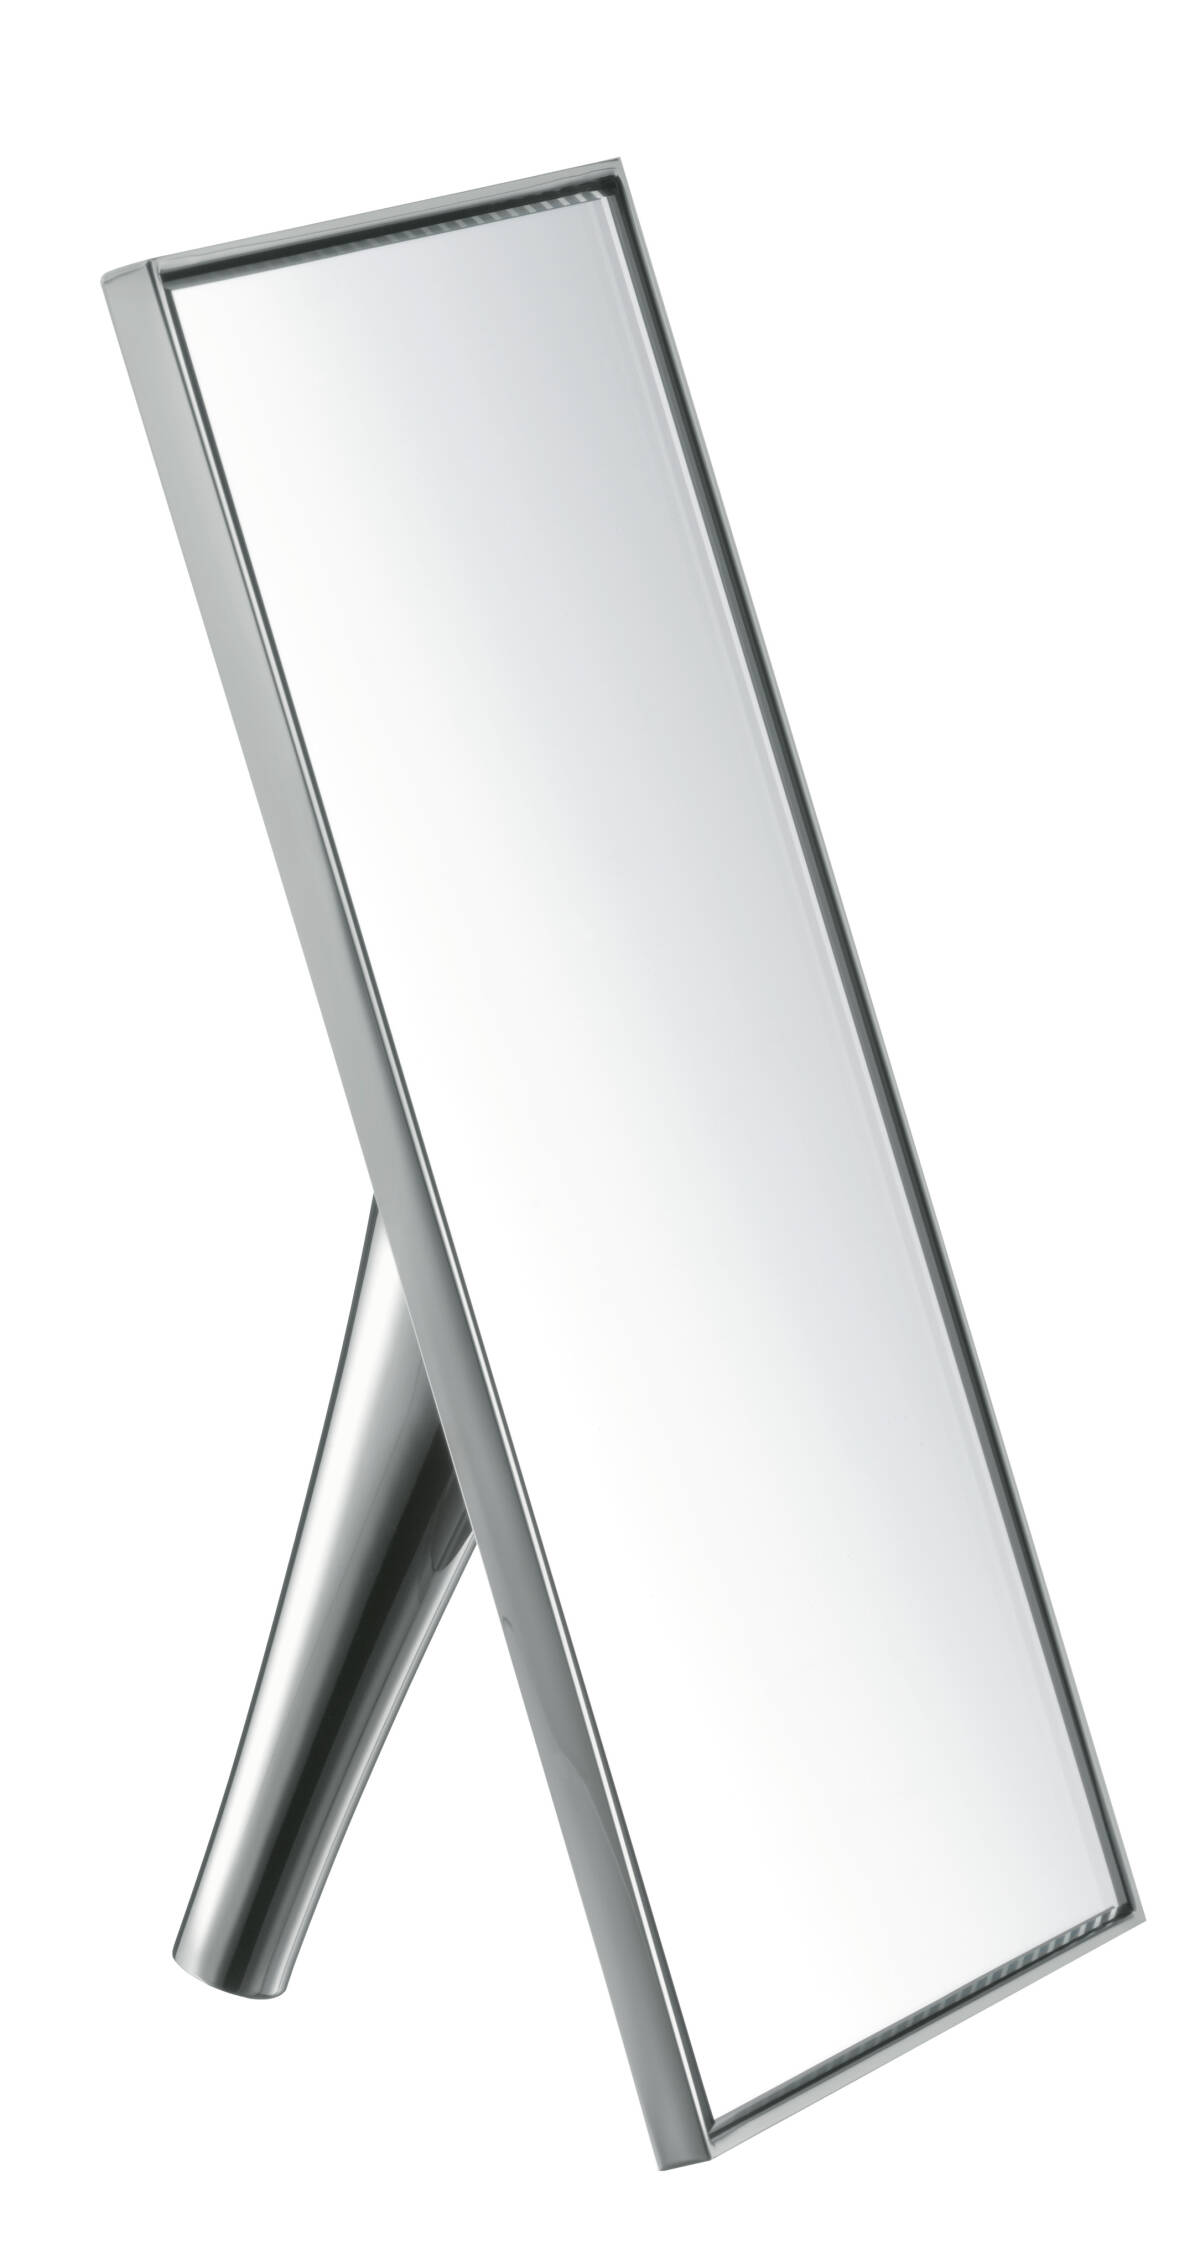 Mirror, Chrome, 42240000